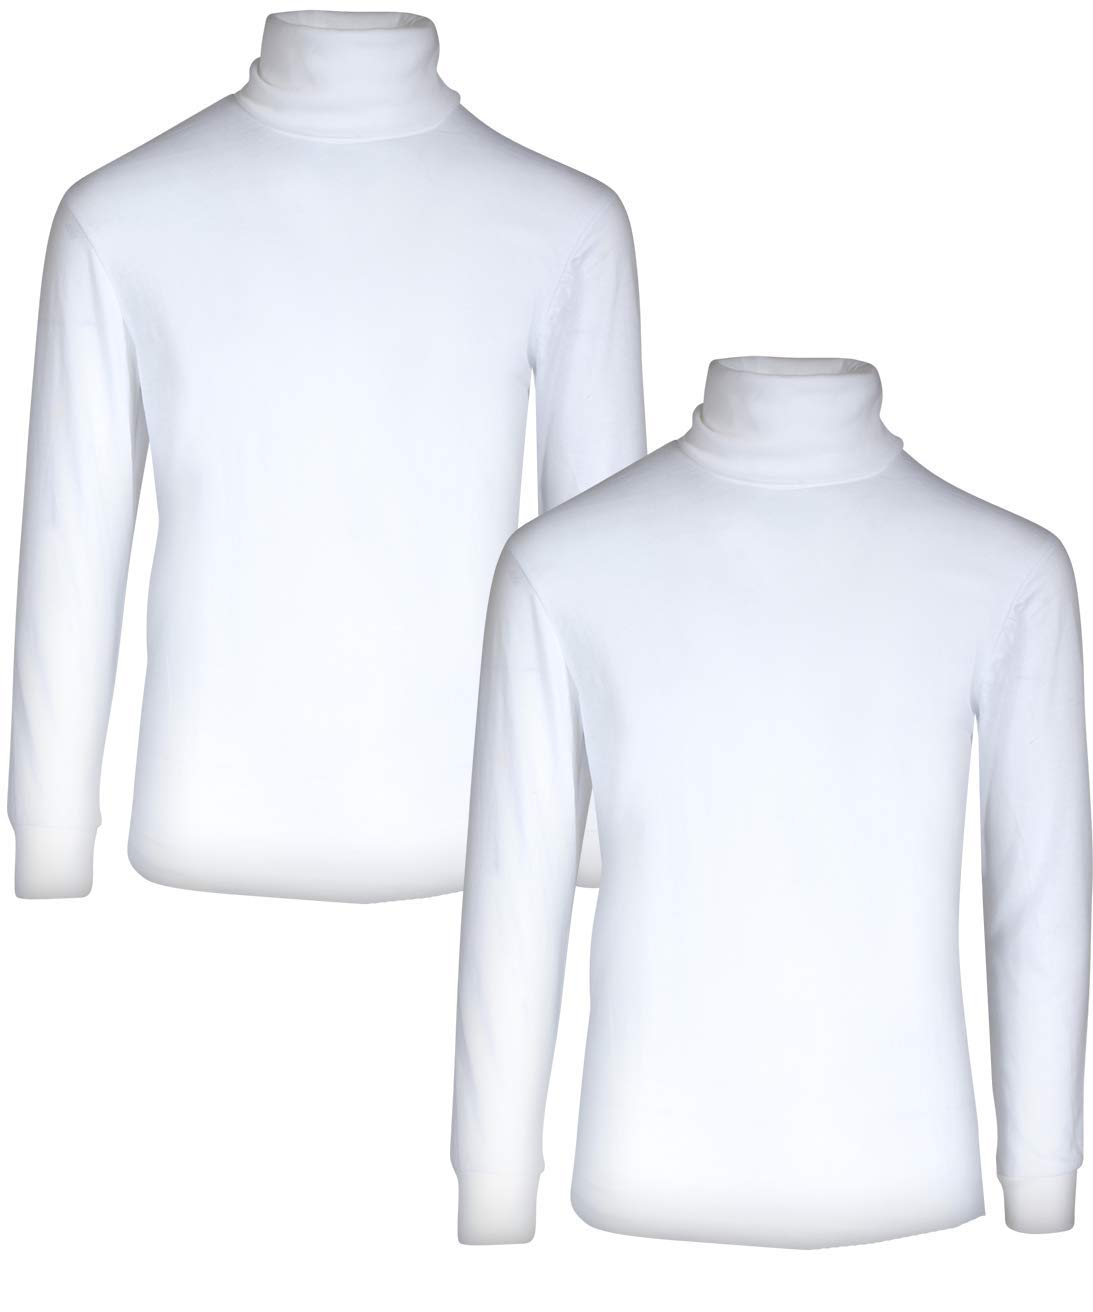 Beverly Hills Polo Club Boy's School Uniform 2-Pack Long Sleeve Turtleneck Shirts, White/White, 4T'